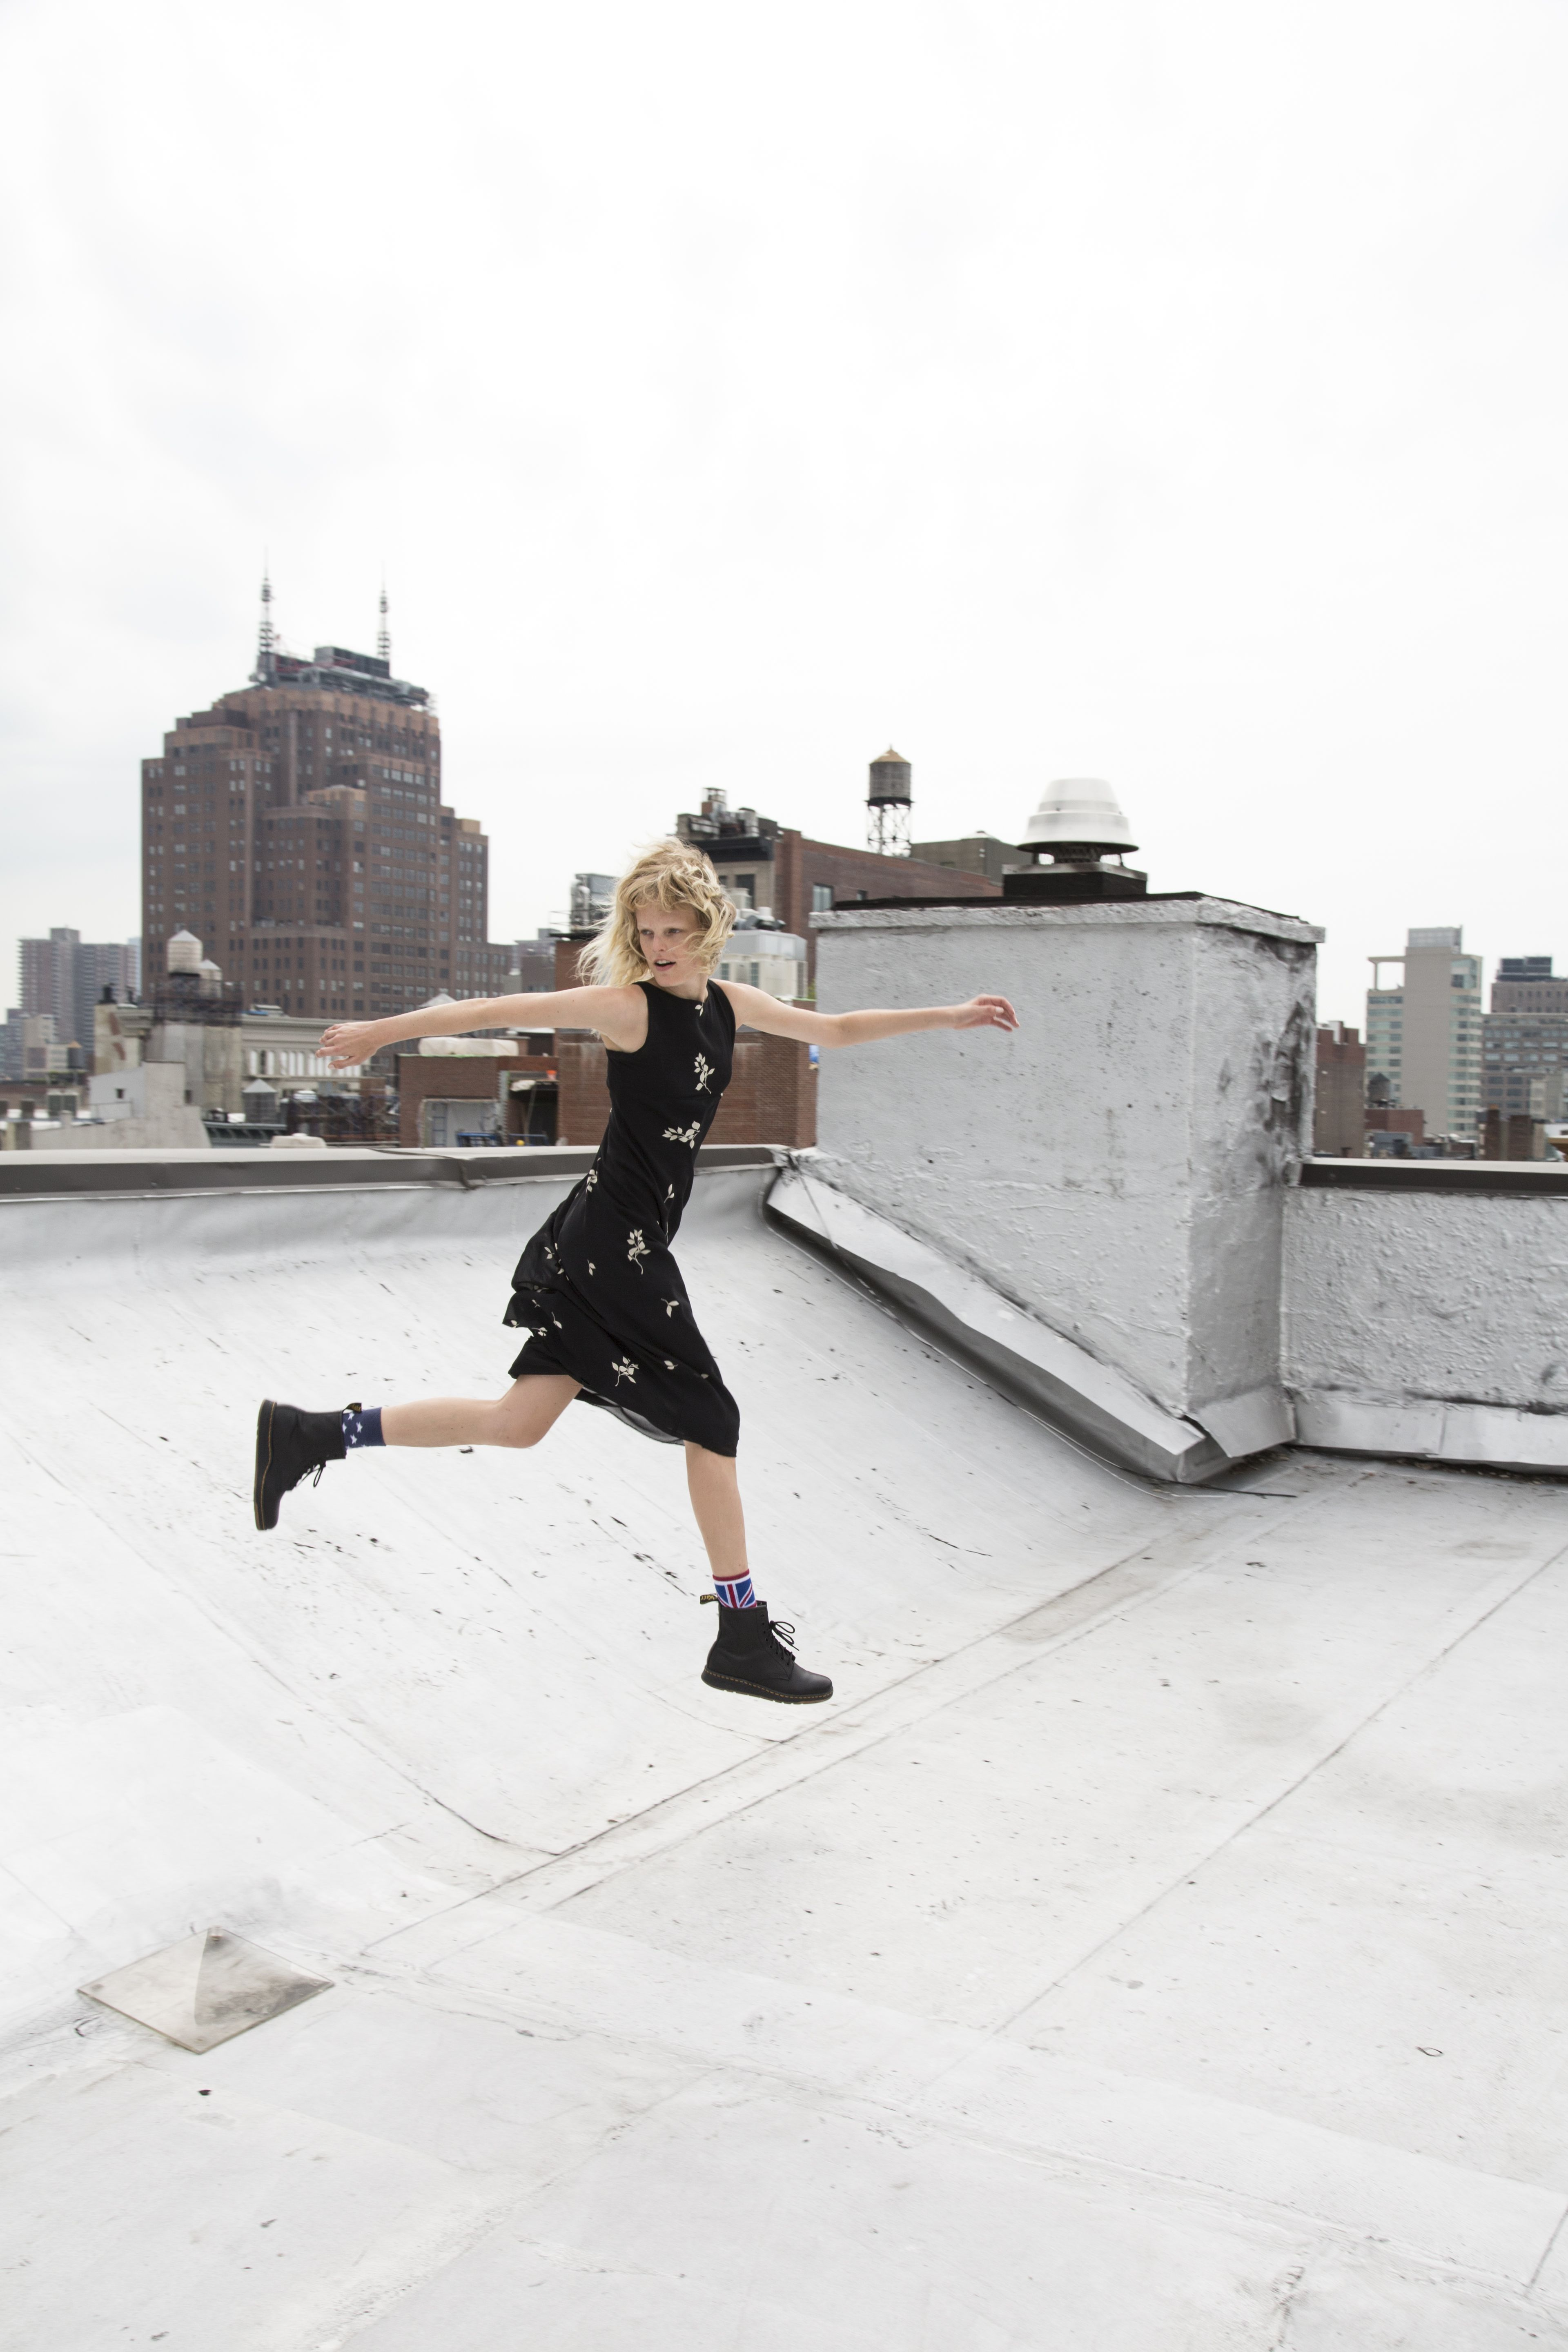 The Newton boot in black from the new #DMsLITE range. Worn by Hanne Gaby Odiele.